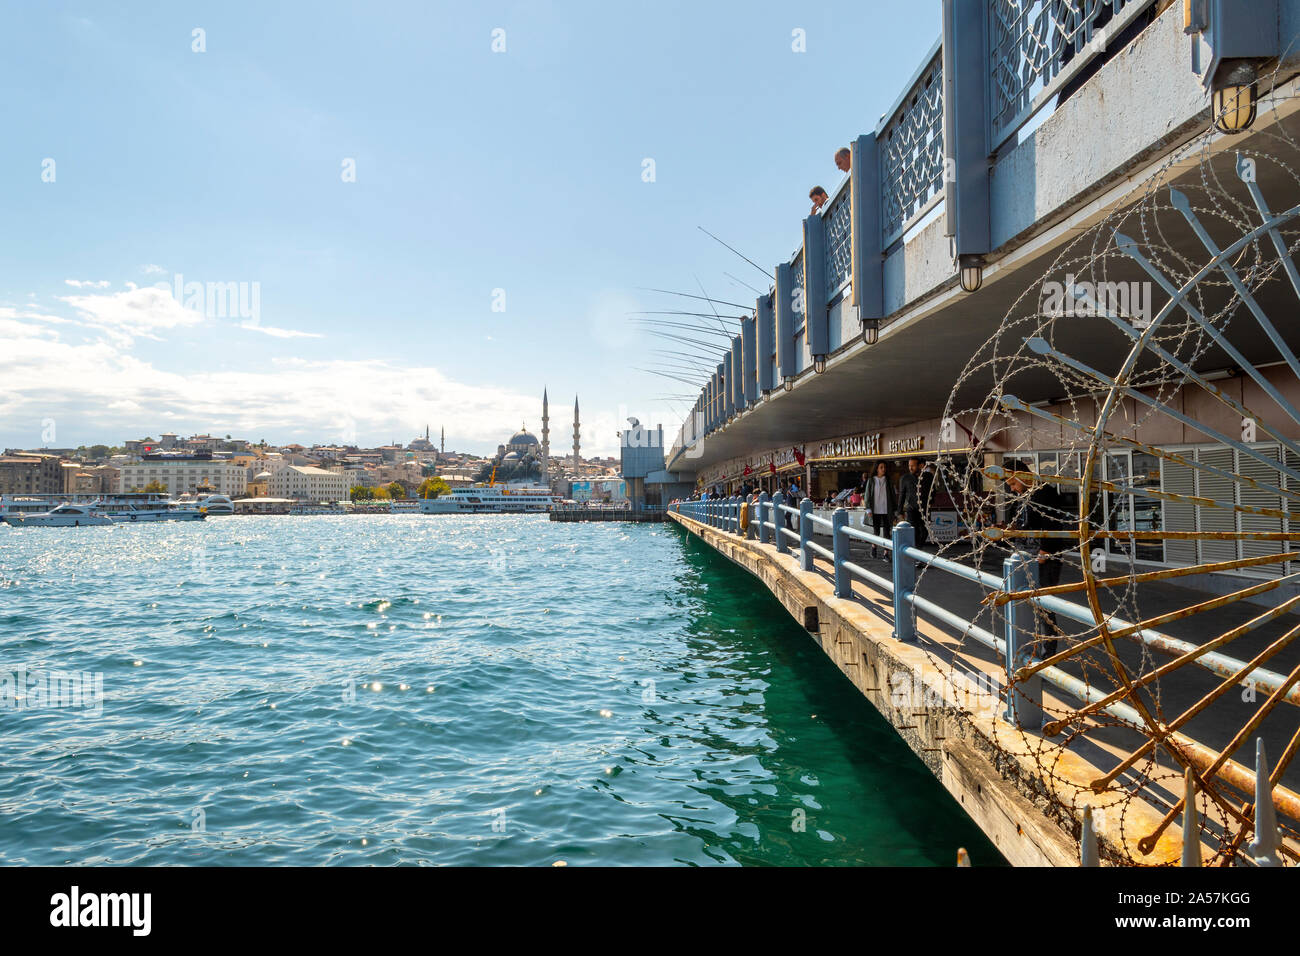 Two levels of the Galata Bridge over the Bosphorus River in Istanbul Turkey, with cafes, tourists, fisherman with poles and the city in view. Stock Photo